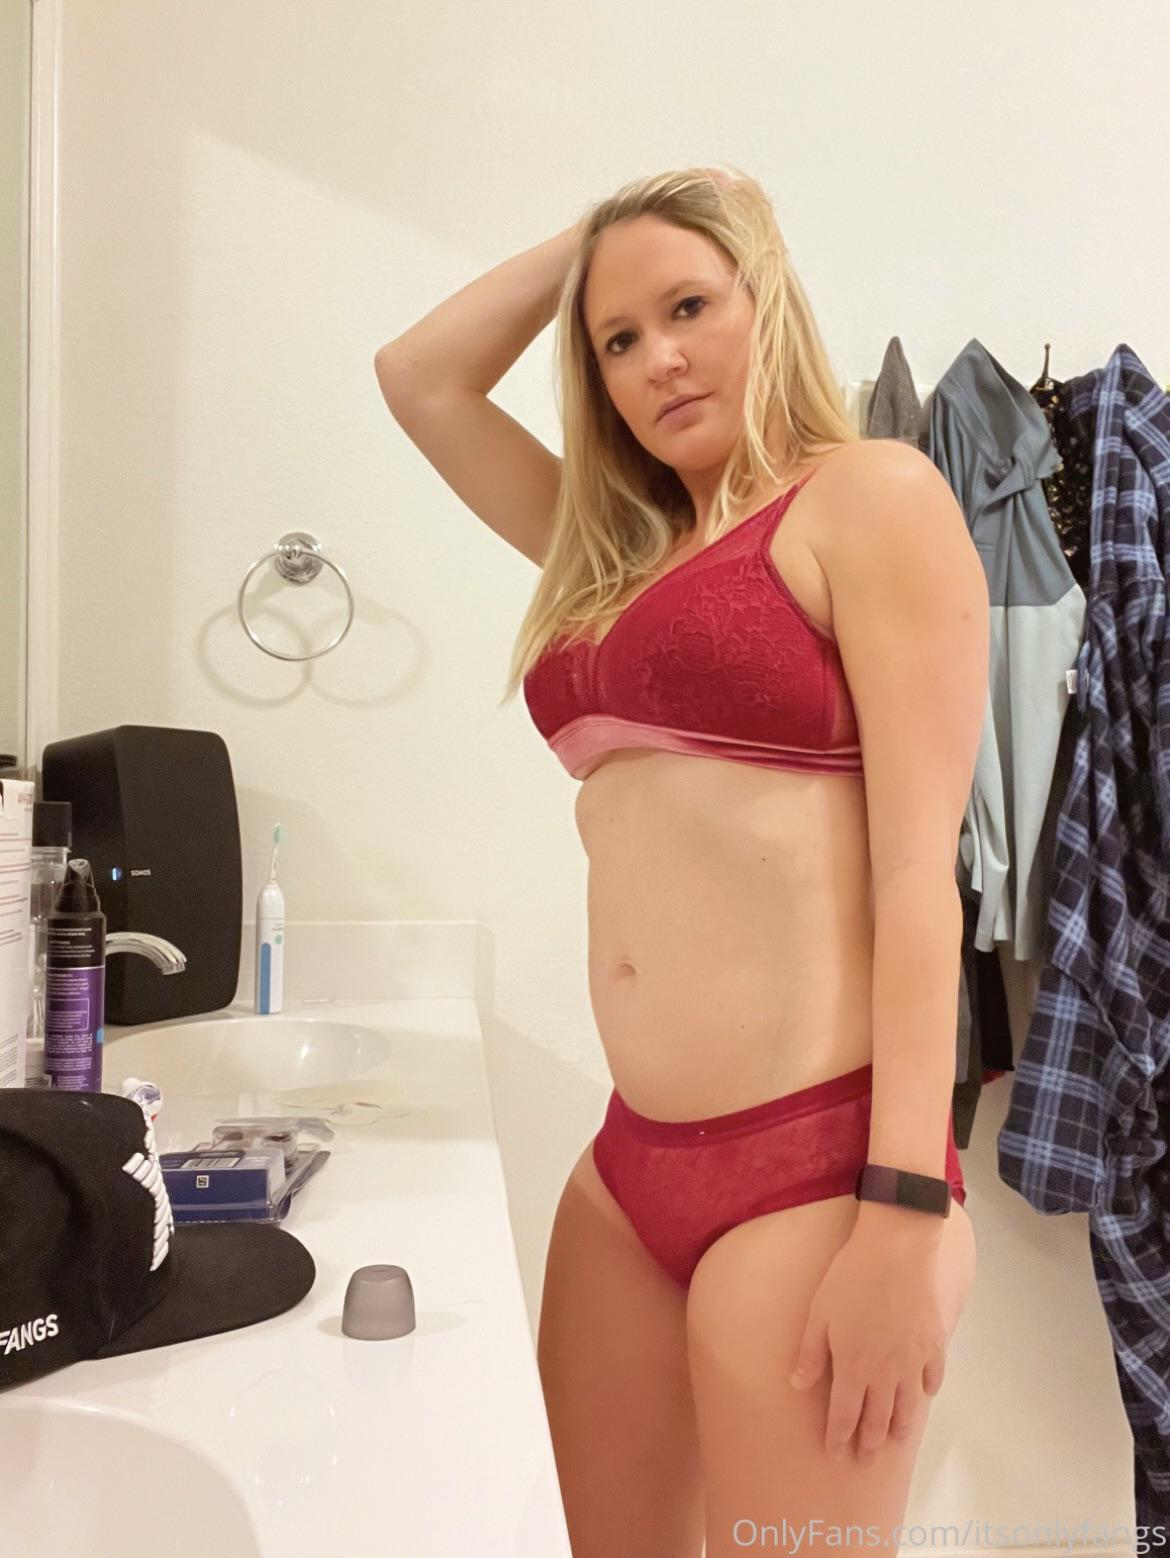 Fangs Nude Shower Onlyfans Content Leaked 0019